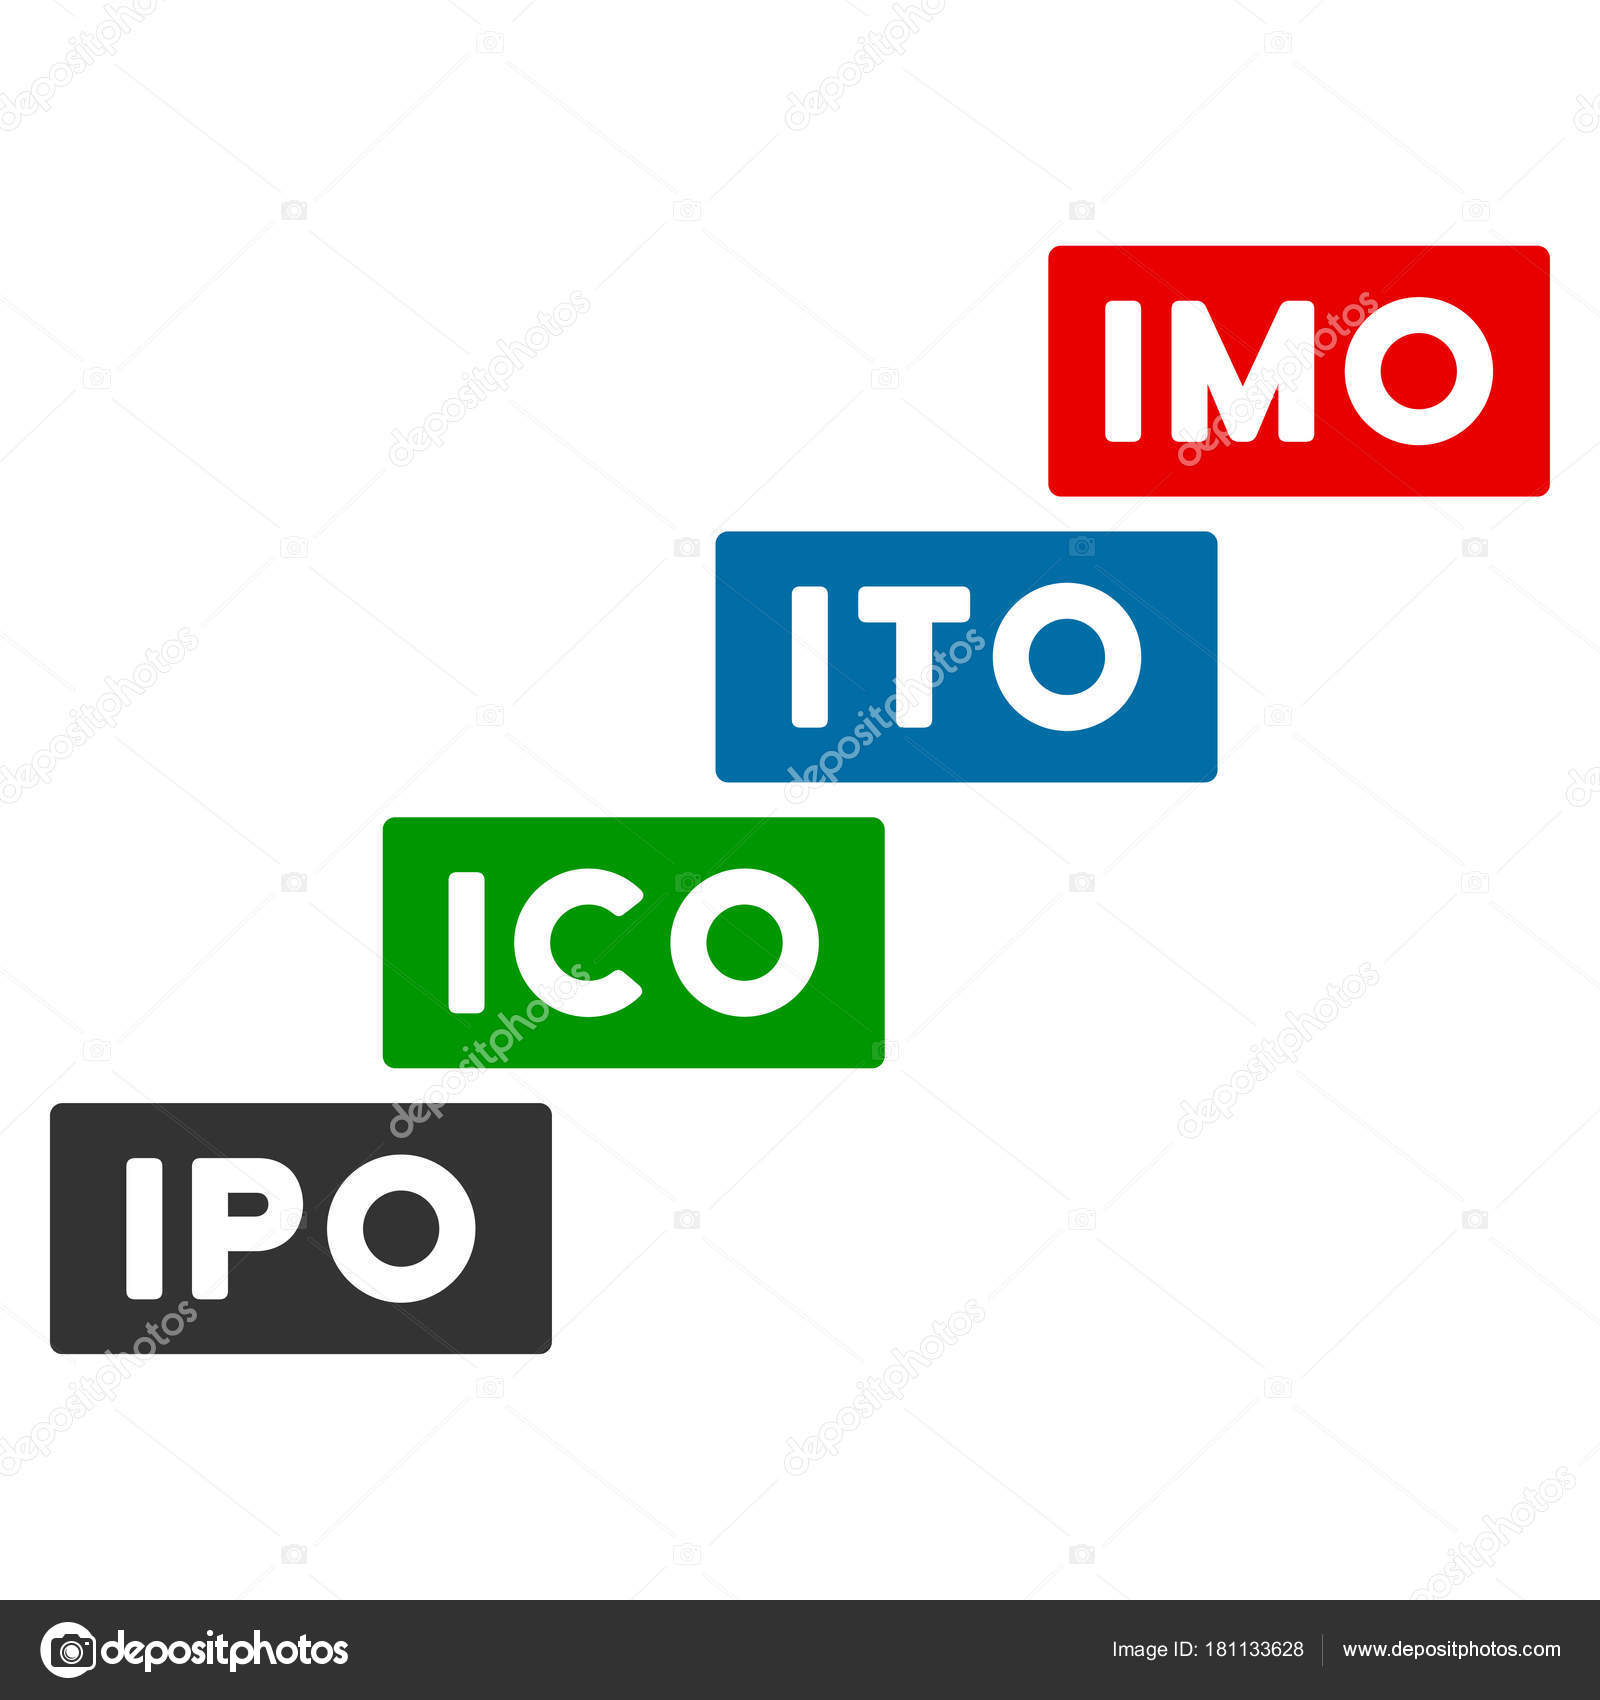 Imo Levels Flat Icon Stock Vector Ahasoft 181133628